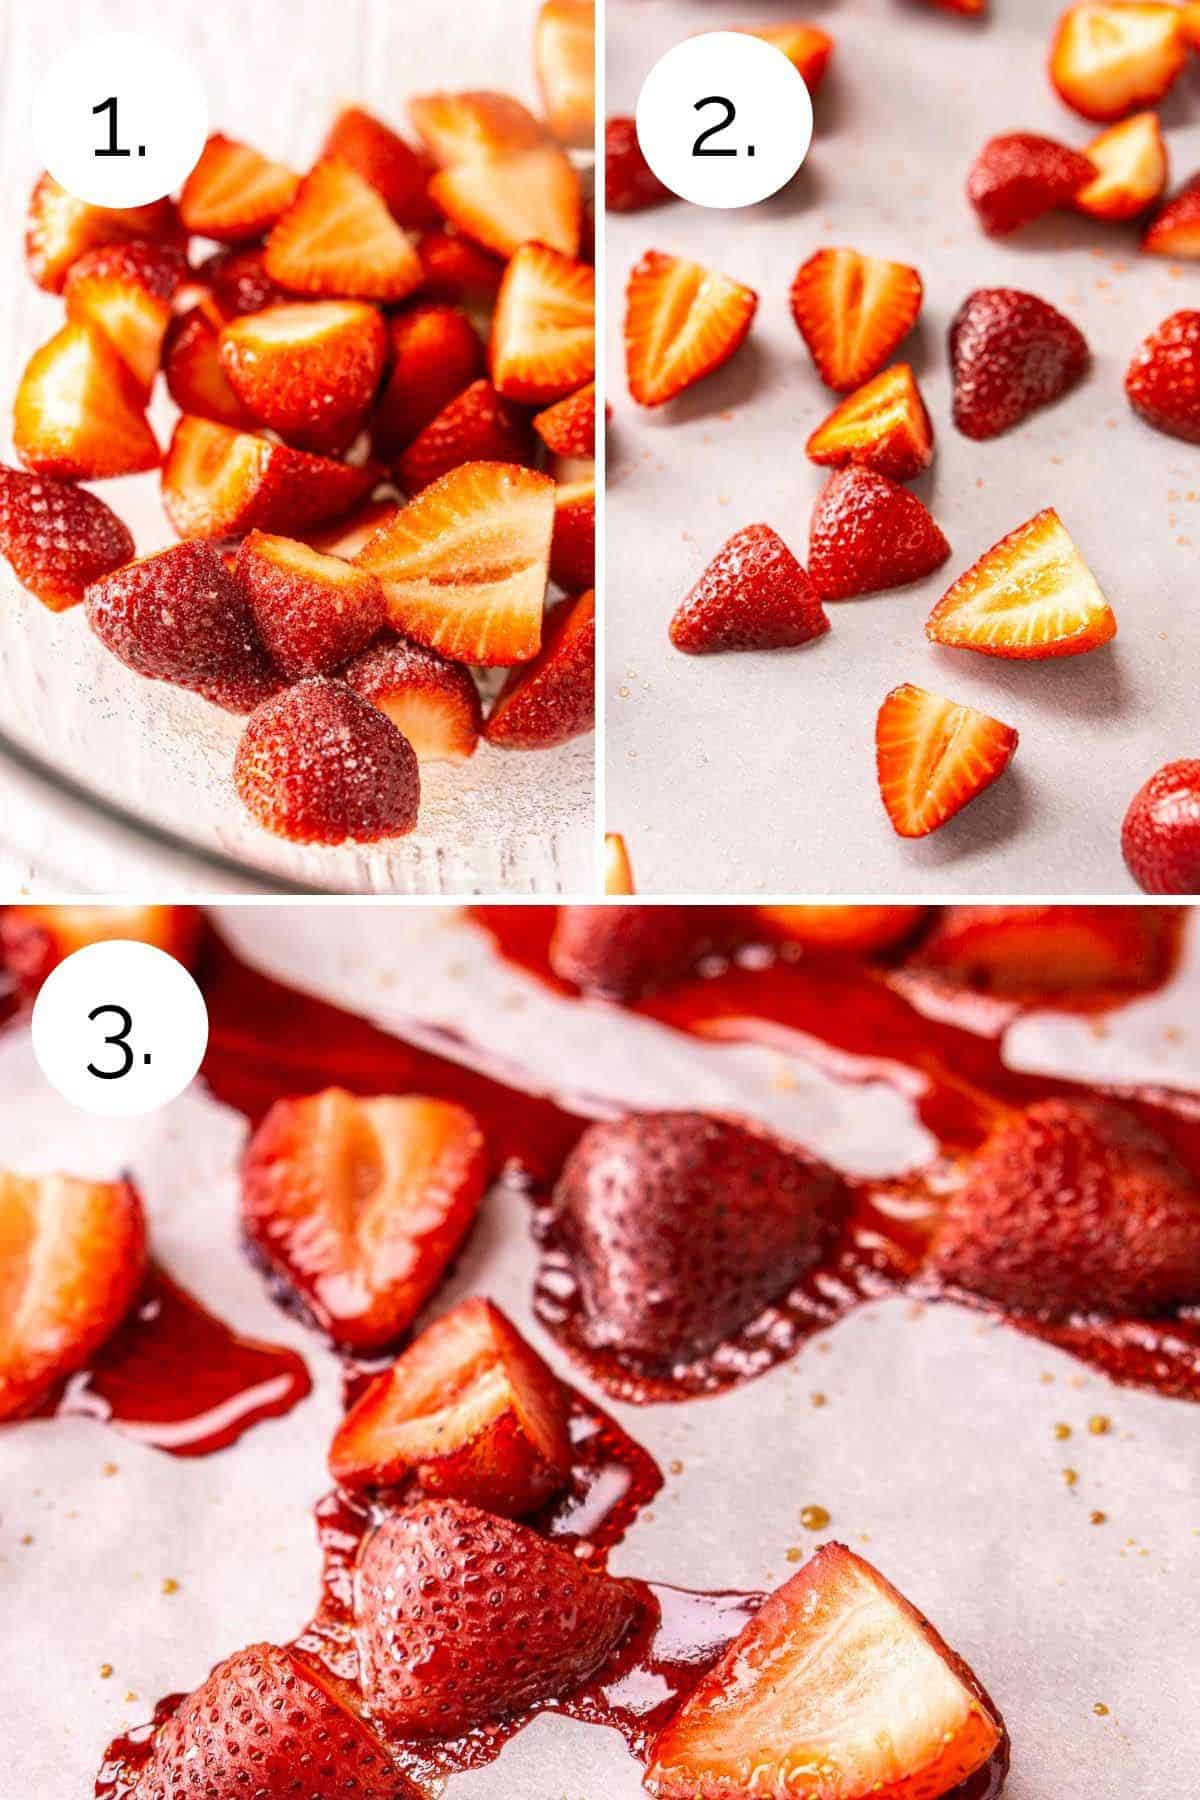 Showing the process of roasting the strawberries until they're syrupy.